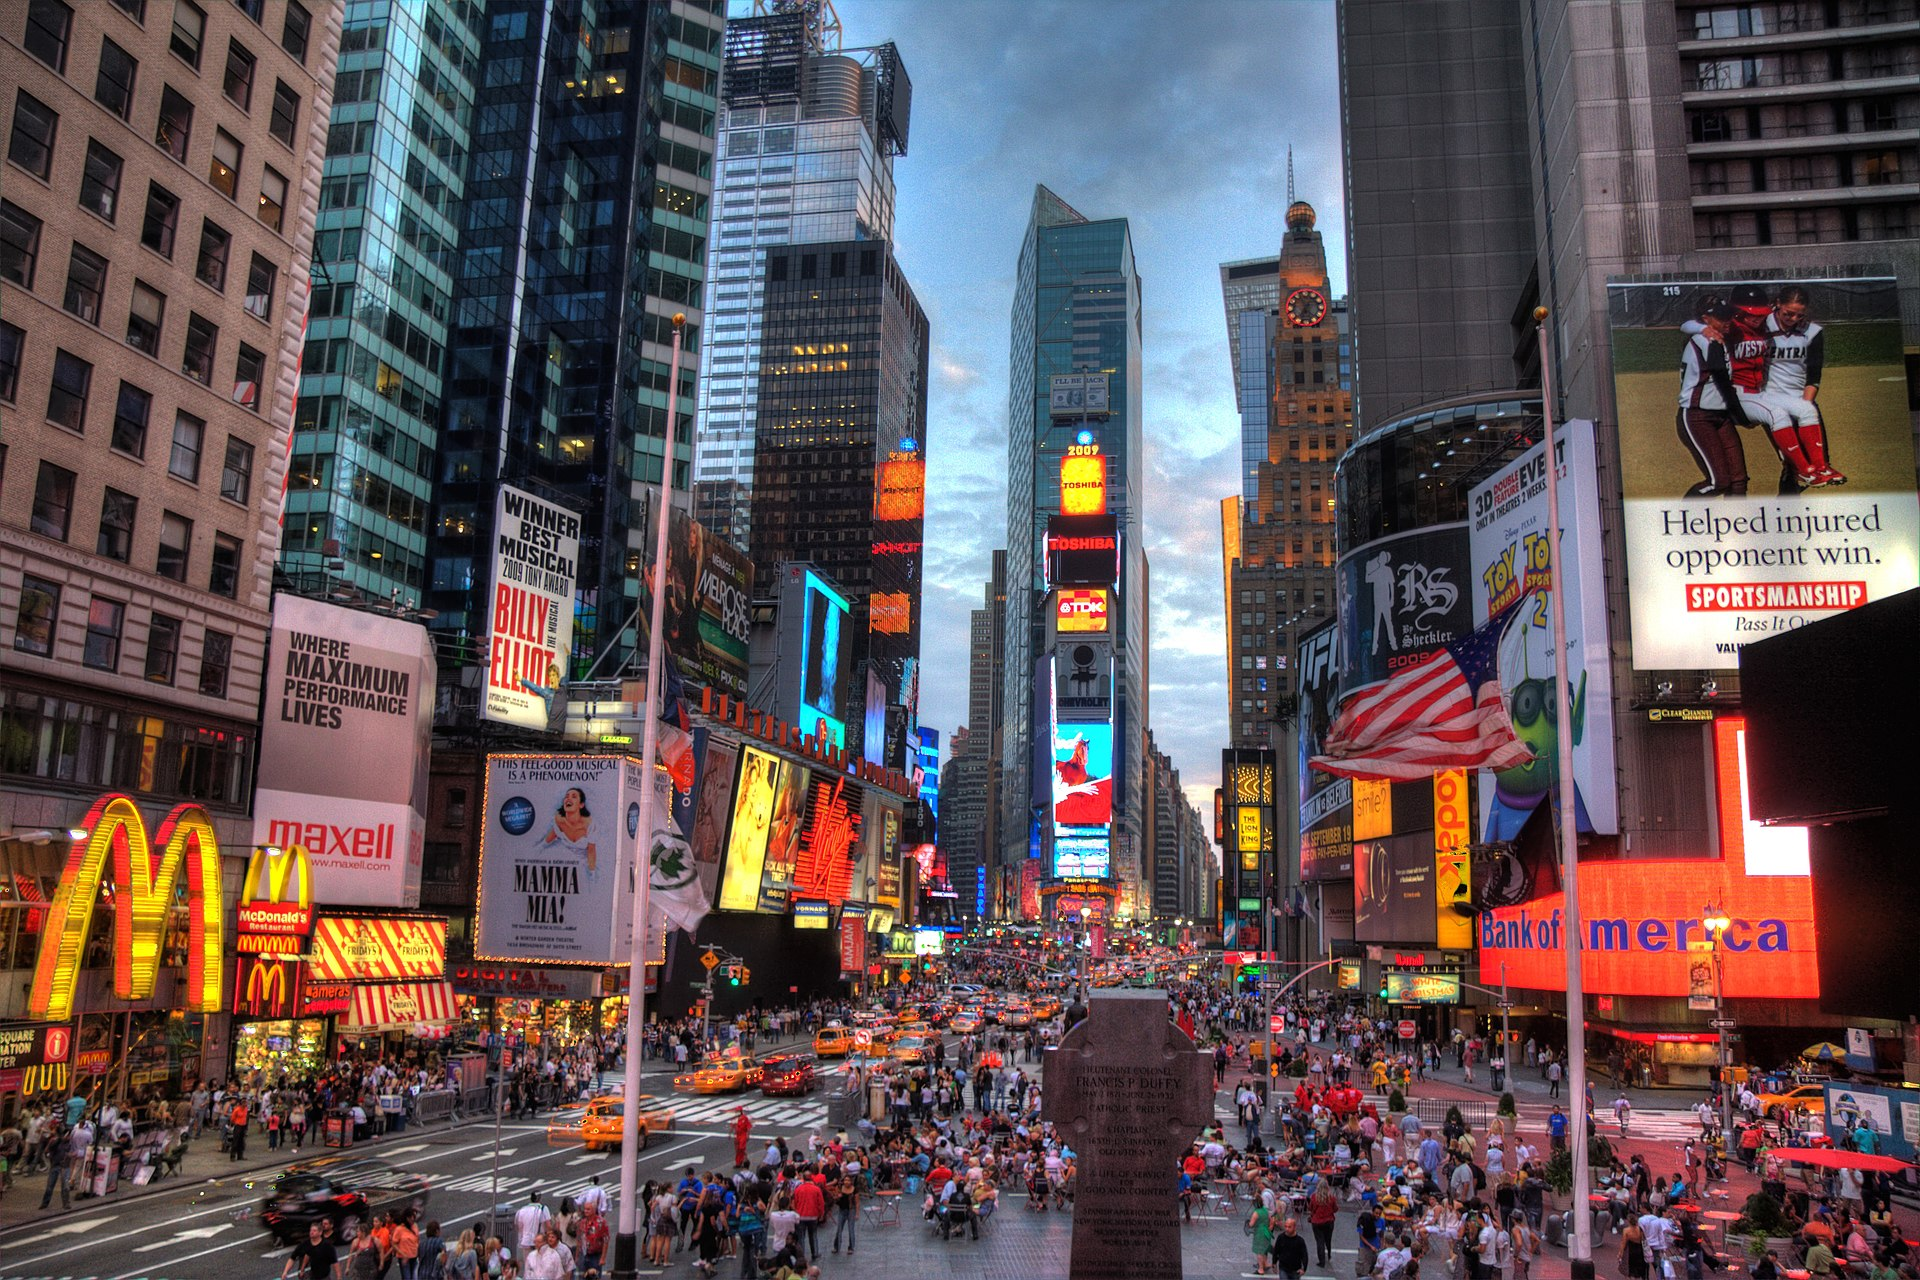 times square times square new years eve times square new year eve 2020 bts new years eve 2019 hyatt centric times square bts times square the naked cowboy crowne plaza times square manhattan times square mall w hotel times square one times square new york new years eve 2020 hyatt times square w times square square time aka times square time square right now new year in new york times square building bts new years eve 2020 residence inn times square bts new years eve new years eve 2020 new york times square today tonic times square times square new years eve 2020 duffy square guitar center times square 3 times square times square now fairfield inn times square times square 2020 cambria hotel times square 7 times square times square at night times square new year new york new years eve 2020 packages longacre square courtyard marriott times square bts new years ichiran times square dave and buster's times square franklin square holiday festival the w times square john's pizza times square bts time square john's of times square new years eve 2020 times square conde nast building broadway times square times square manhattan new york new year 2020 airbnb times square new years eve times square 2020 new times square times square fort myers cambria times square time square garden father duffy square times squared 3015 times square 1970s shops in times square city rooms nyc times square naked cowboy times square new york new years eve packages hilton times square closing the times square times square new years eve tickets steve harvey new years eve new york time square new years eve olive garden new years eve pandora times square times square to central park times square attractions times square 42nd street george square christmas courtyard times square homewood suites manhattan modells times square homewood suites times square time square new year 2020 kehinde wiley times square times square shopping 1 times square disney times square moxy's rooftop bar times square christm